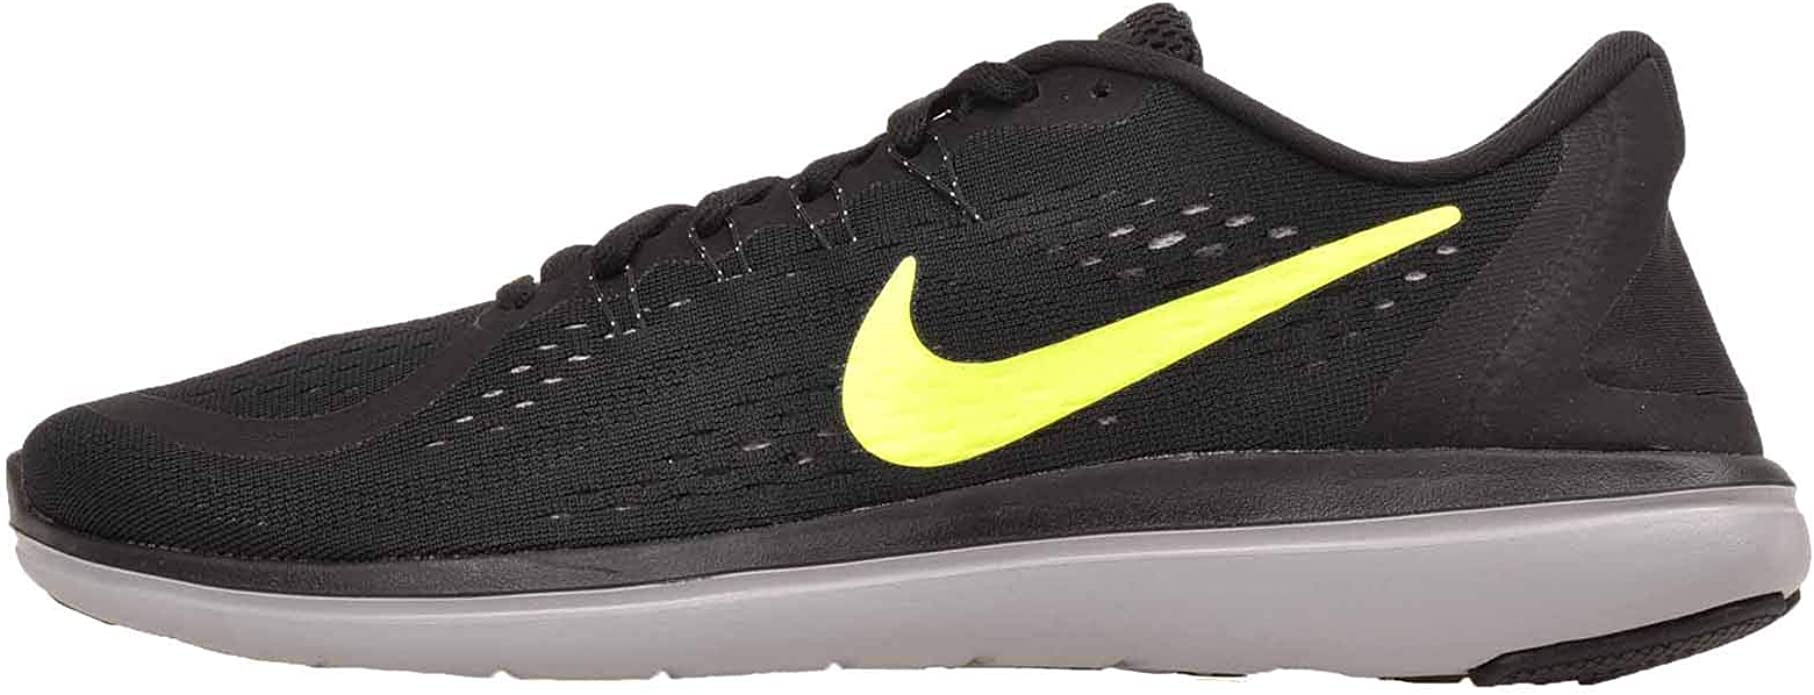 Nike Flex 2017 RN, Zapatillas de Running para Hombre, Multicolor (Black/Volt-Wolf Grey 015), 39 EU: Amazon.es: Zapatos y complementos